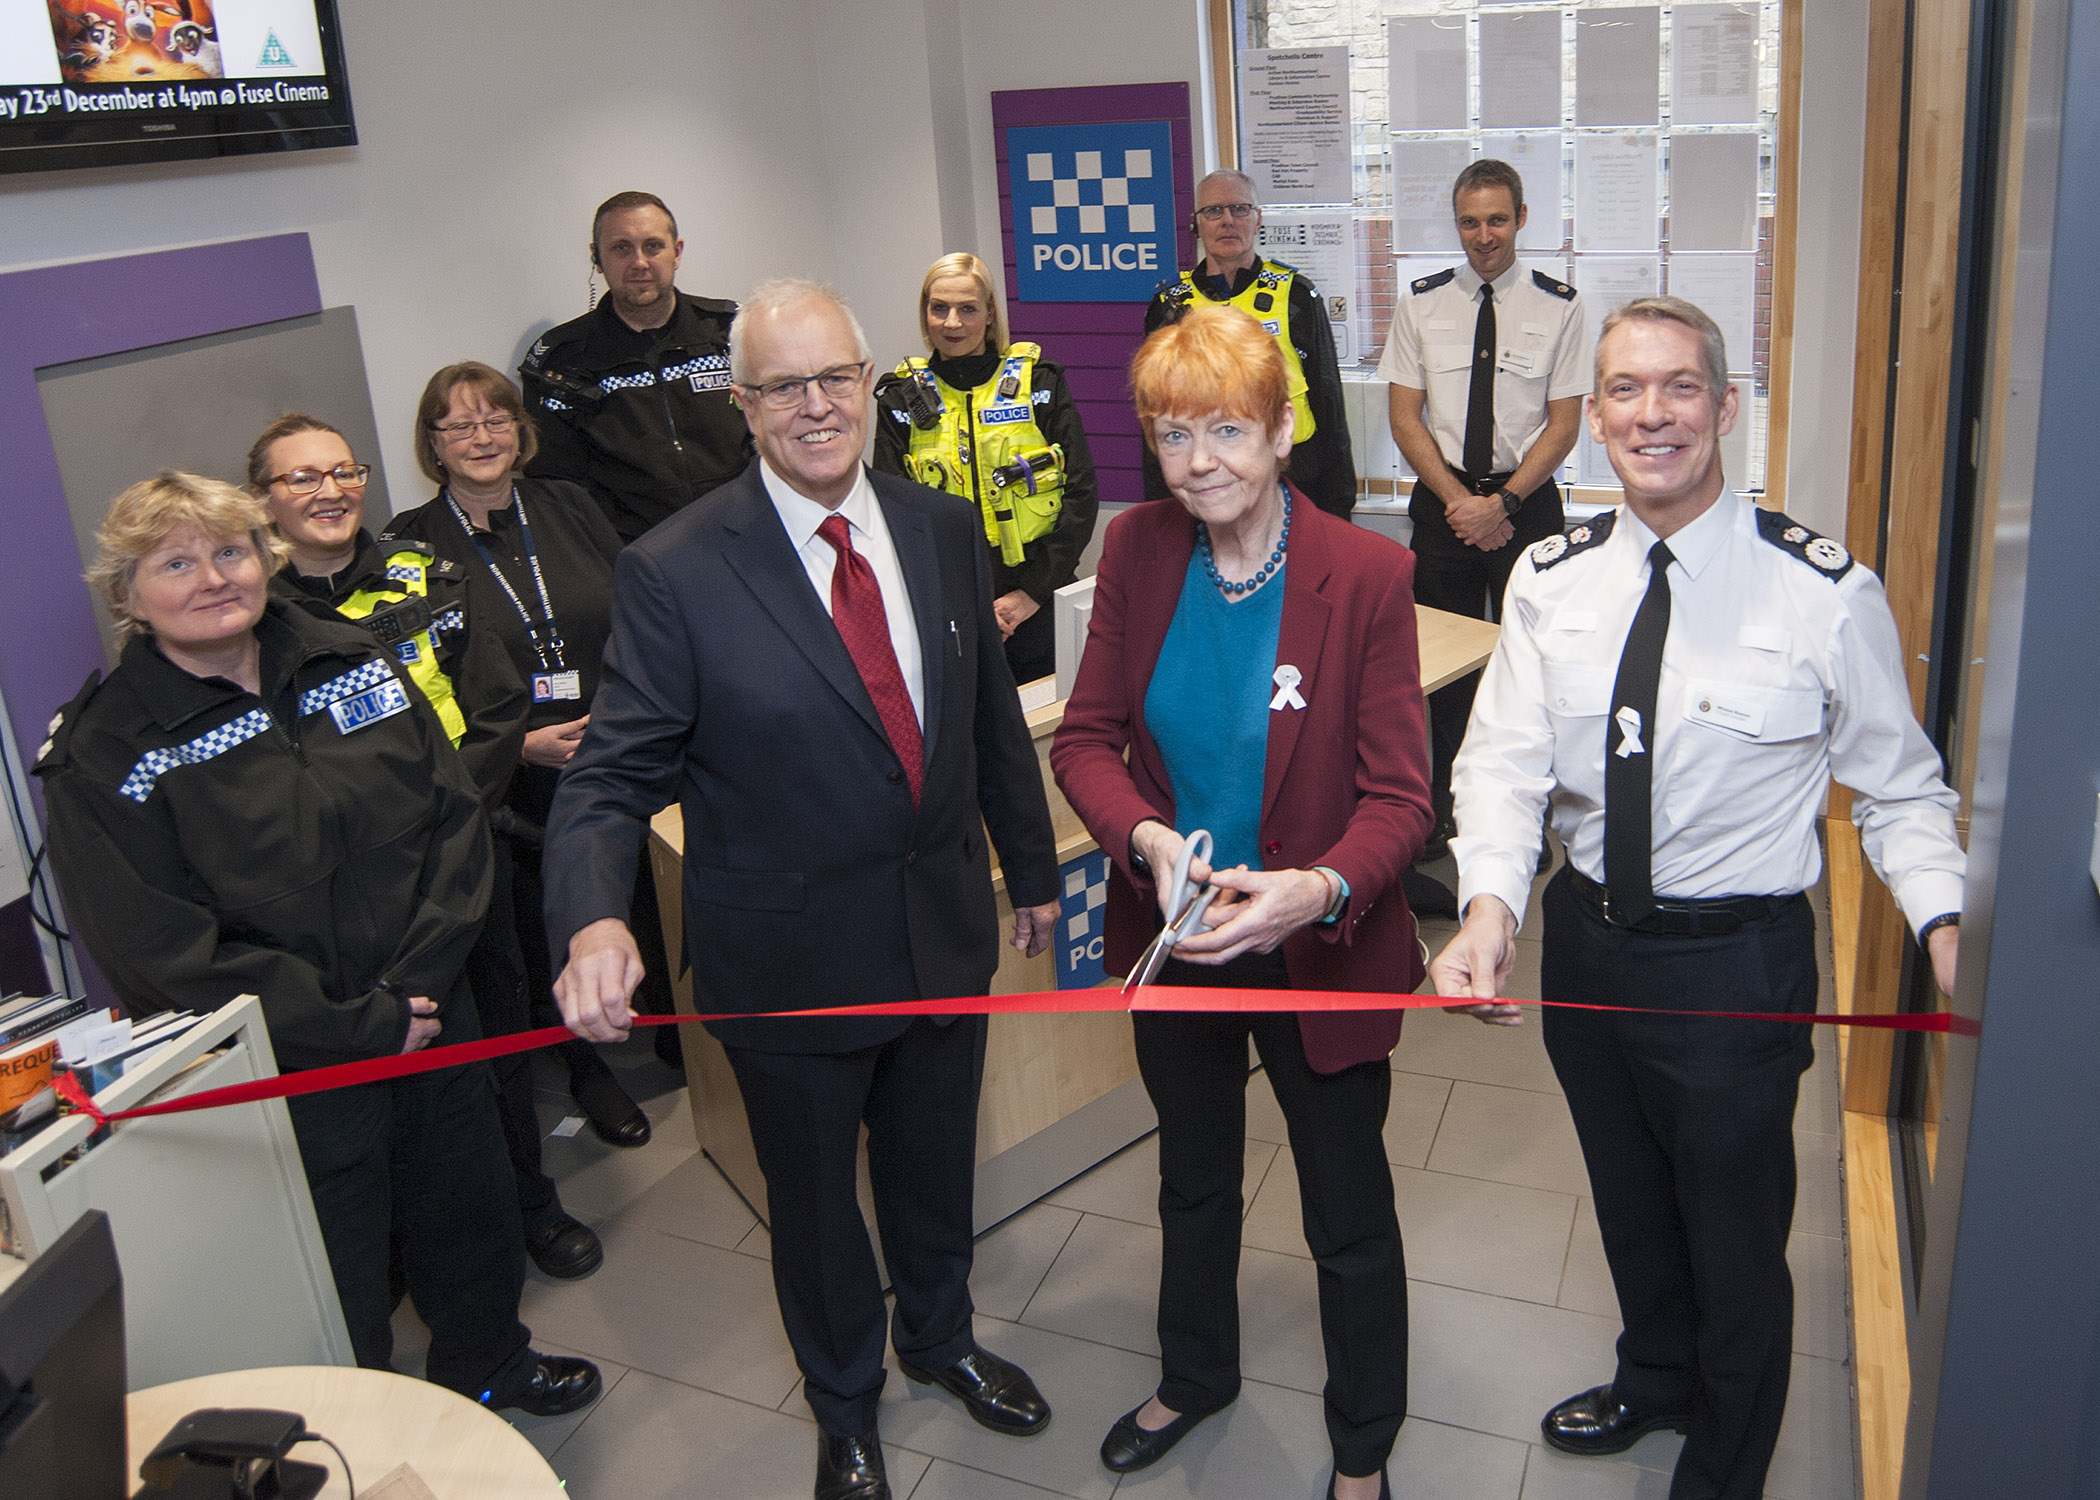 New police base opens in Prudhoe